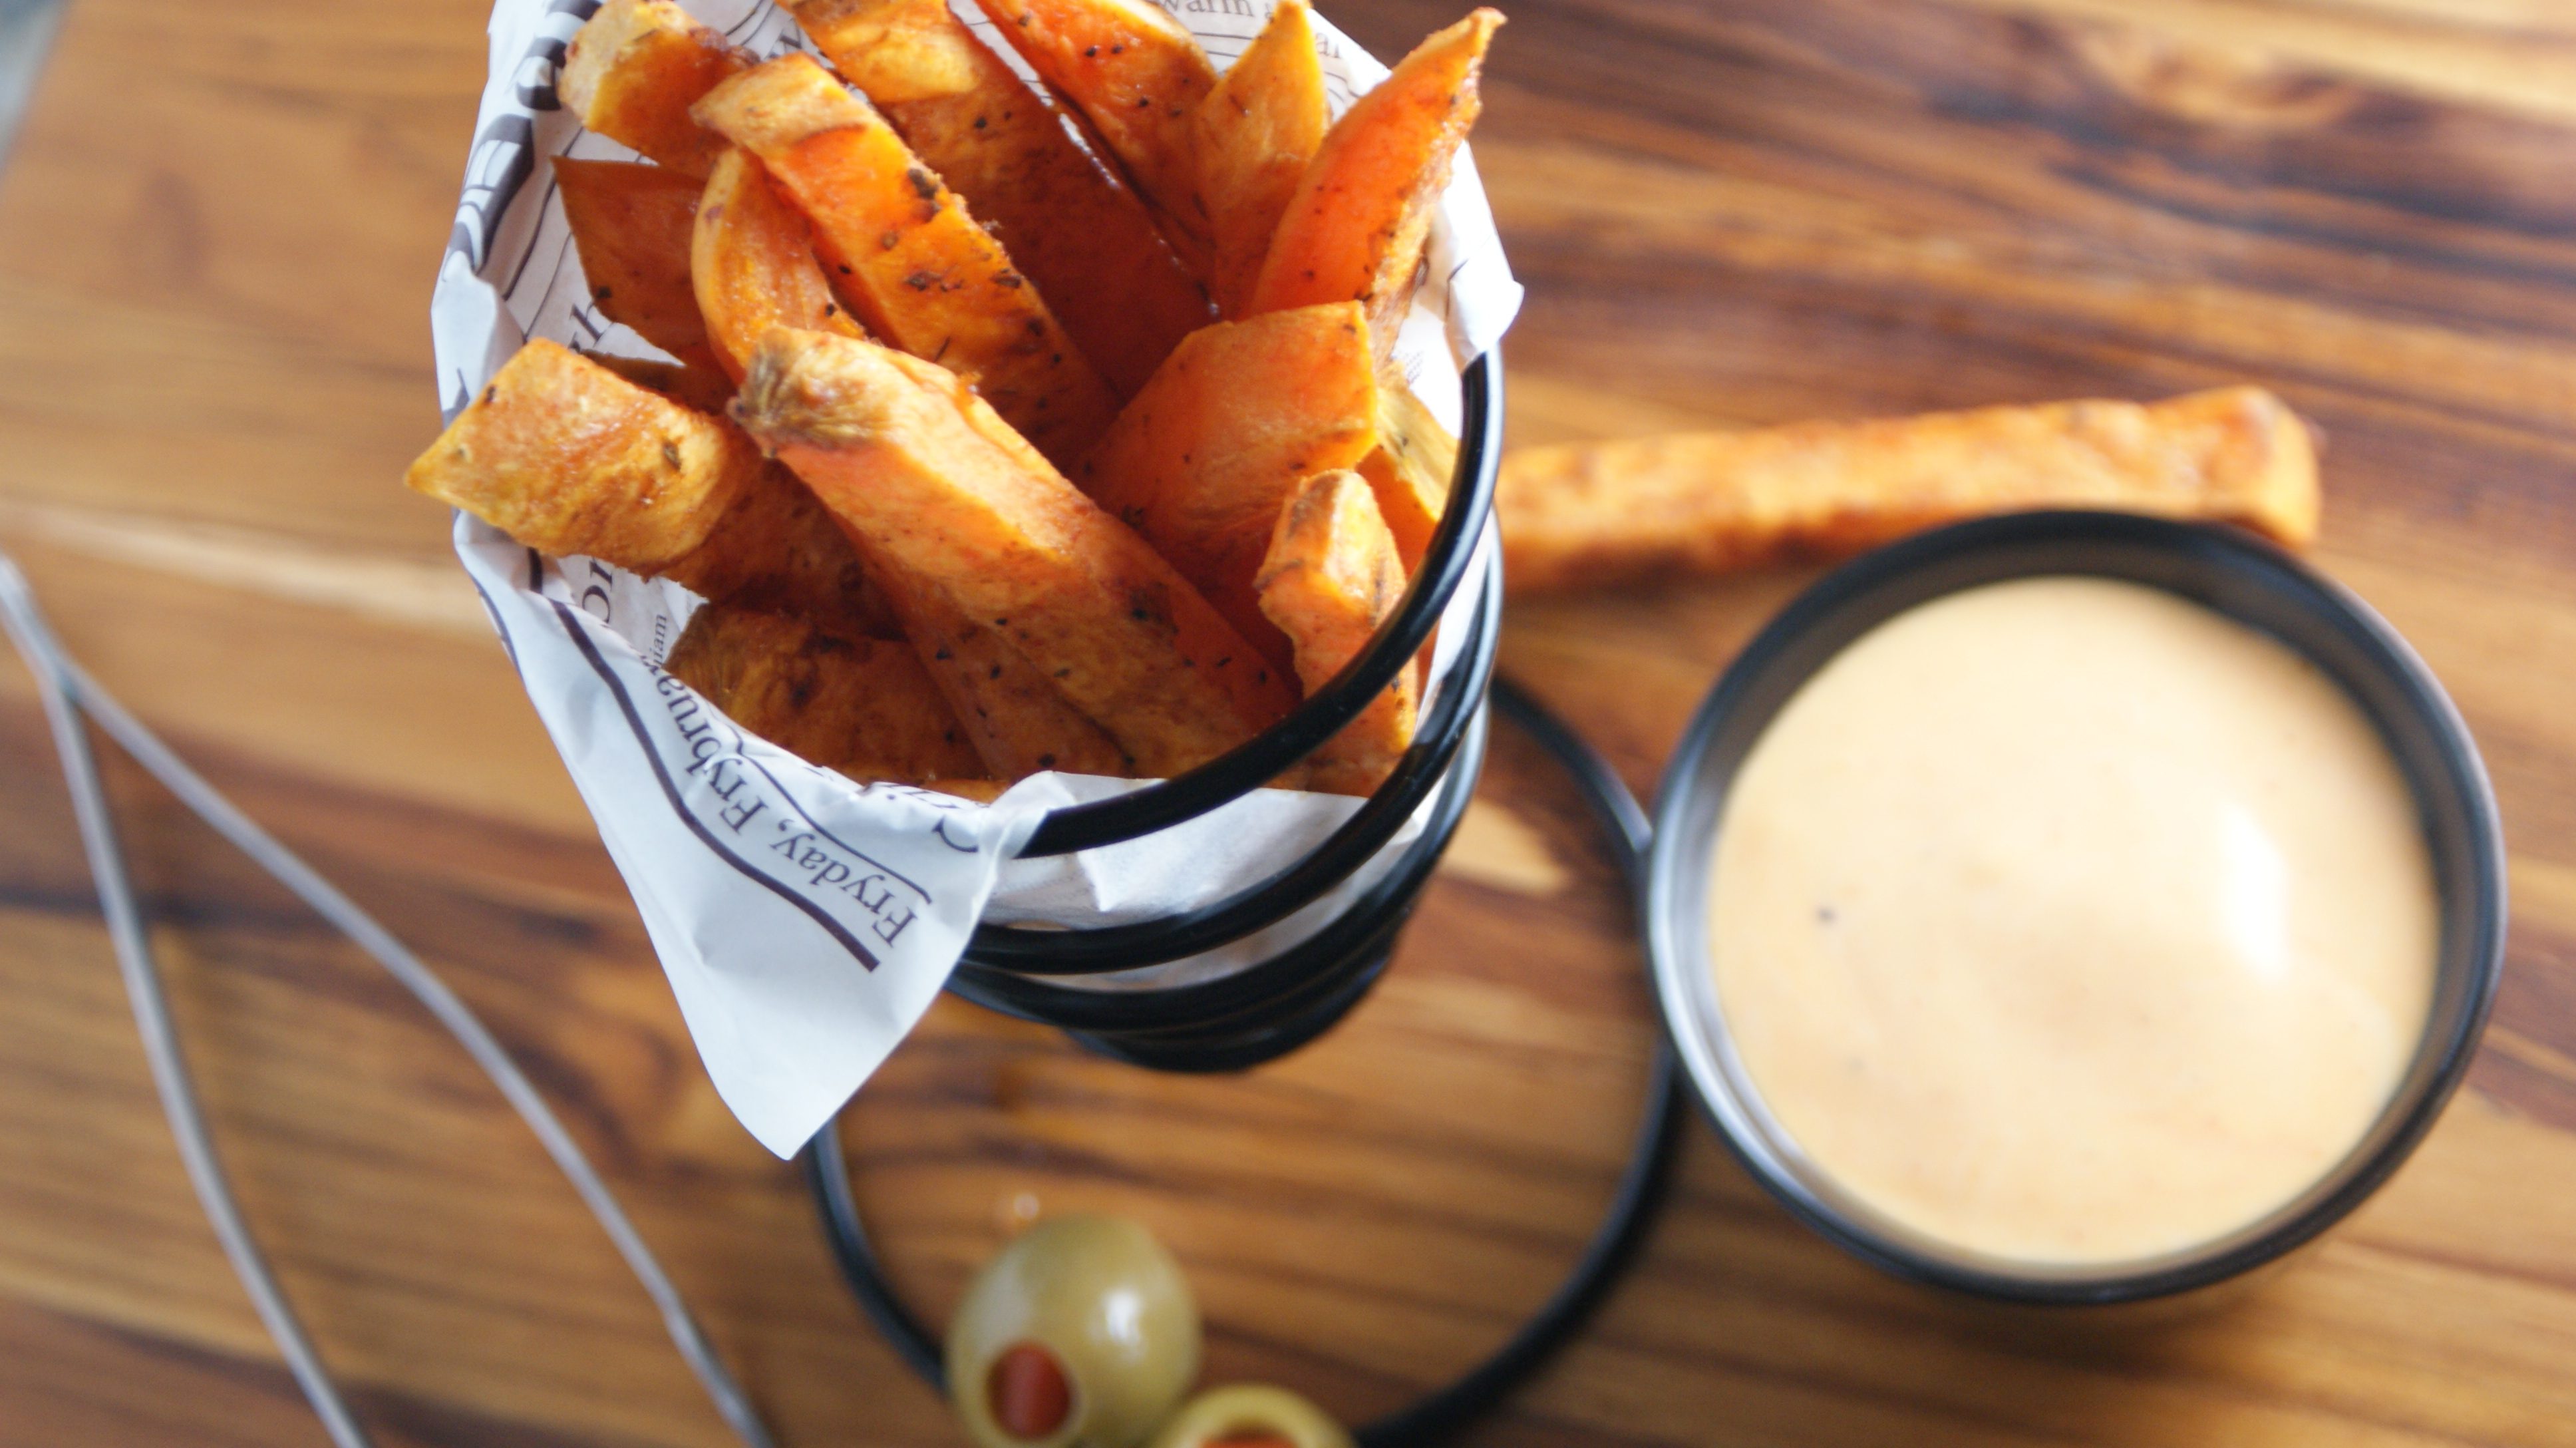 Baked Sweet Potato Fries - Cooking Up Clean